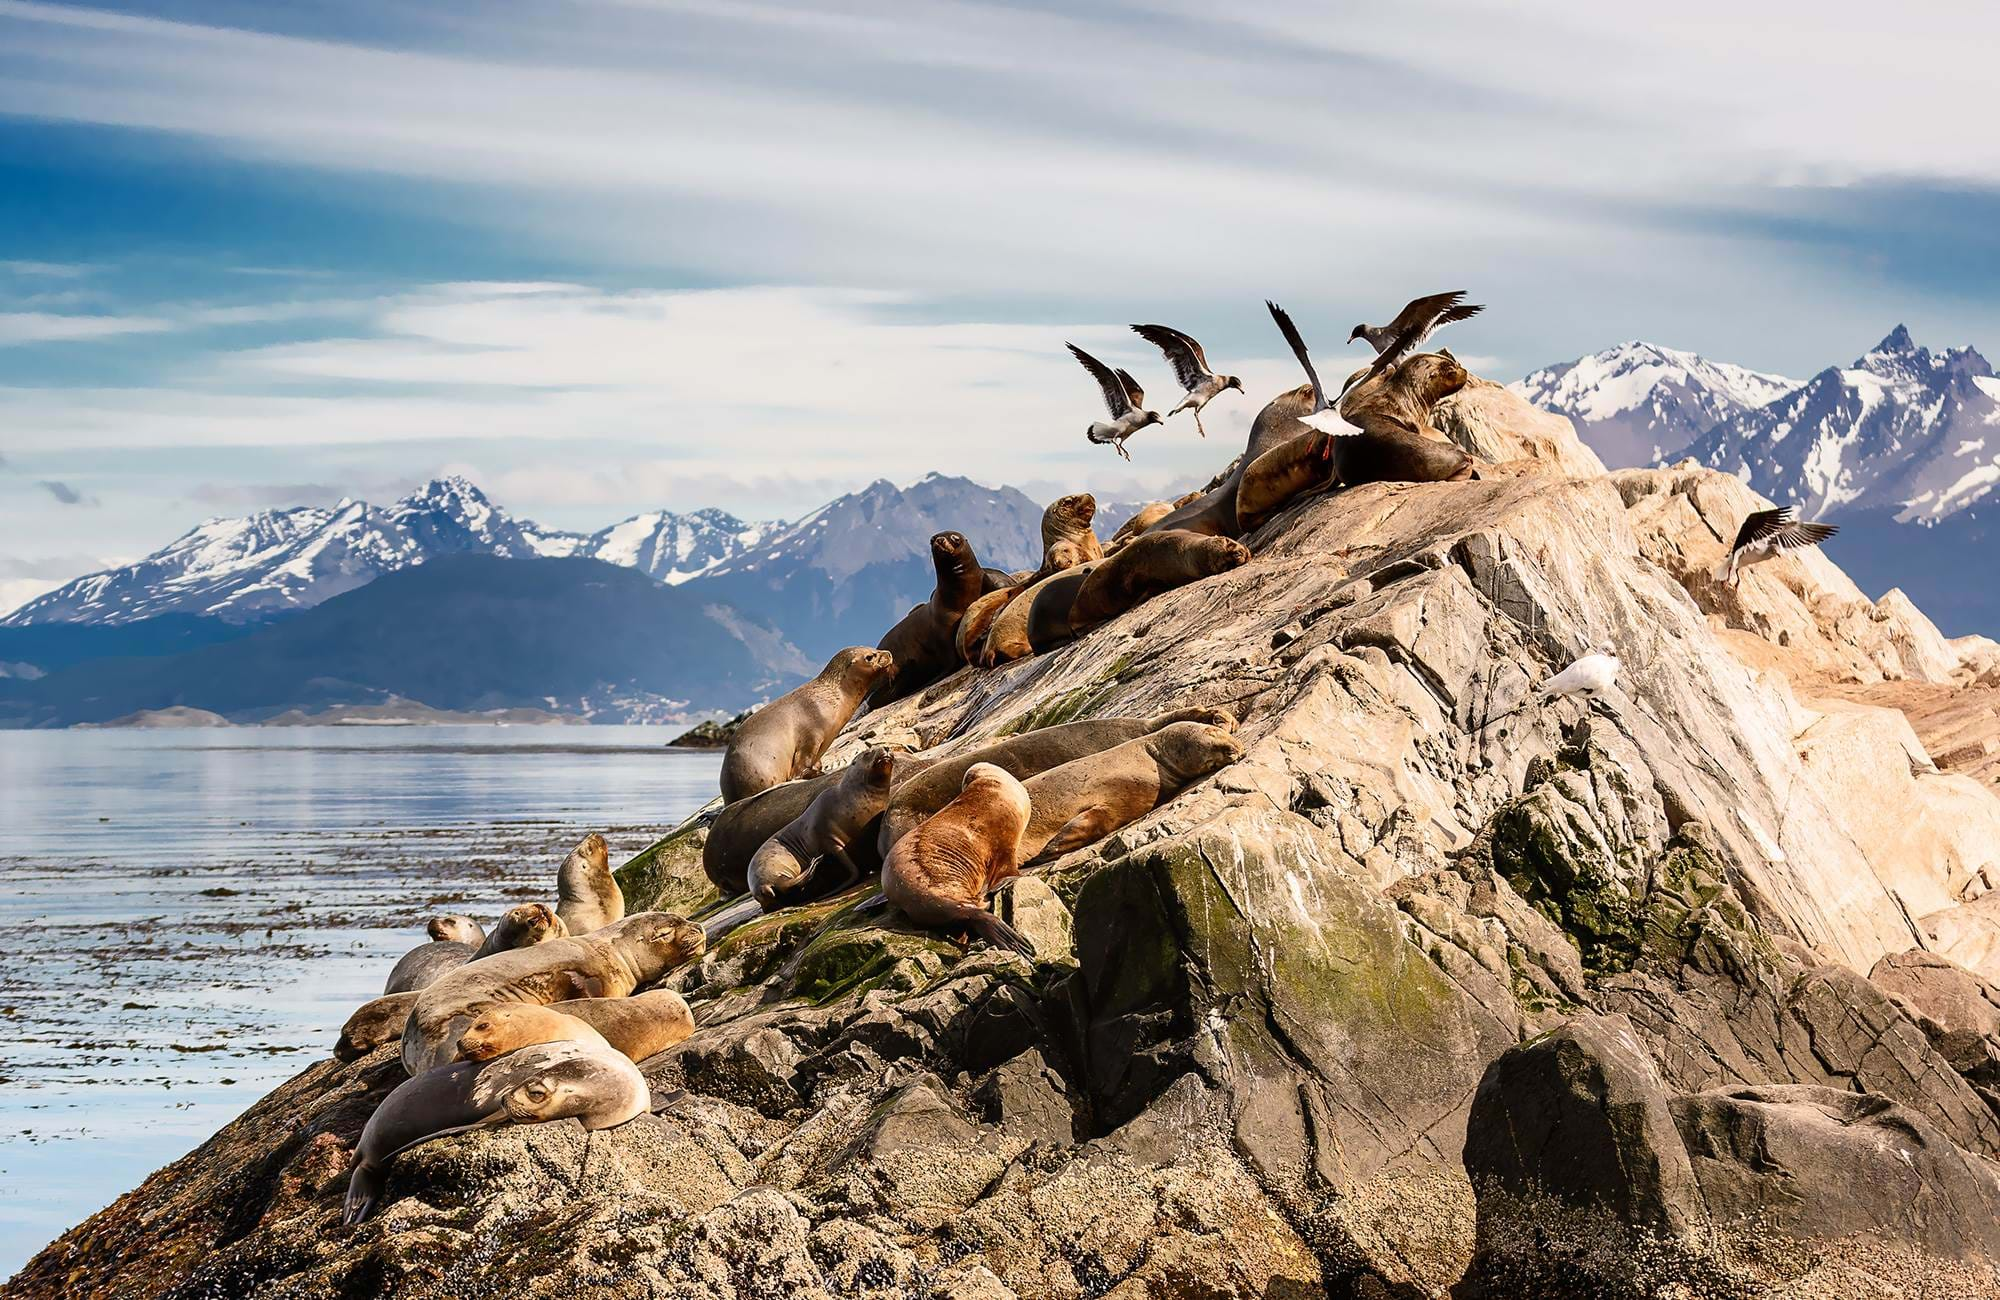 Sea lions playing around on a cliff at Ushuaia, Argentina